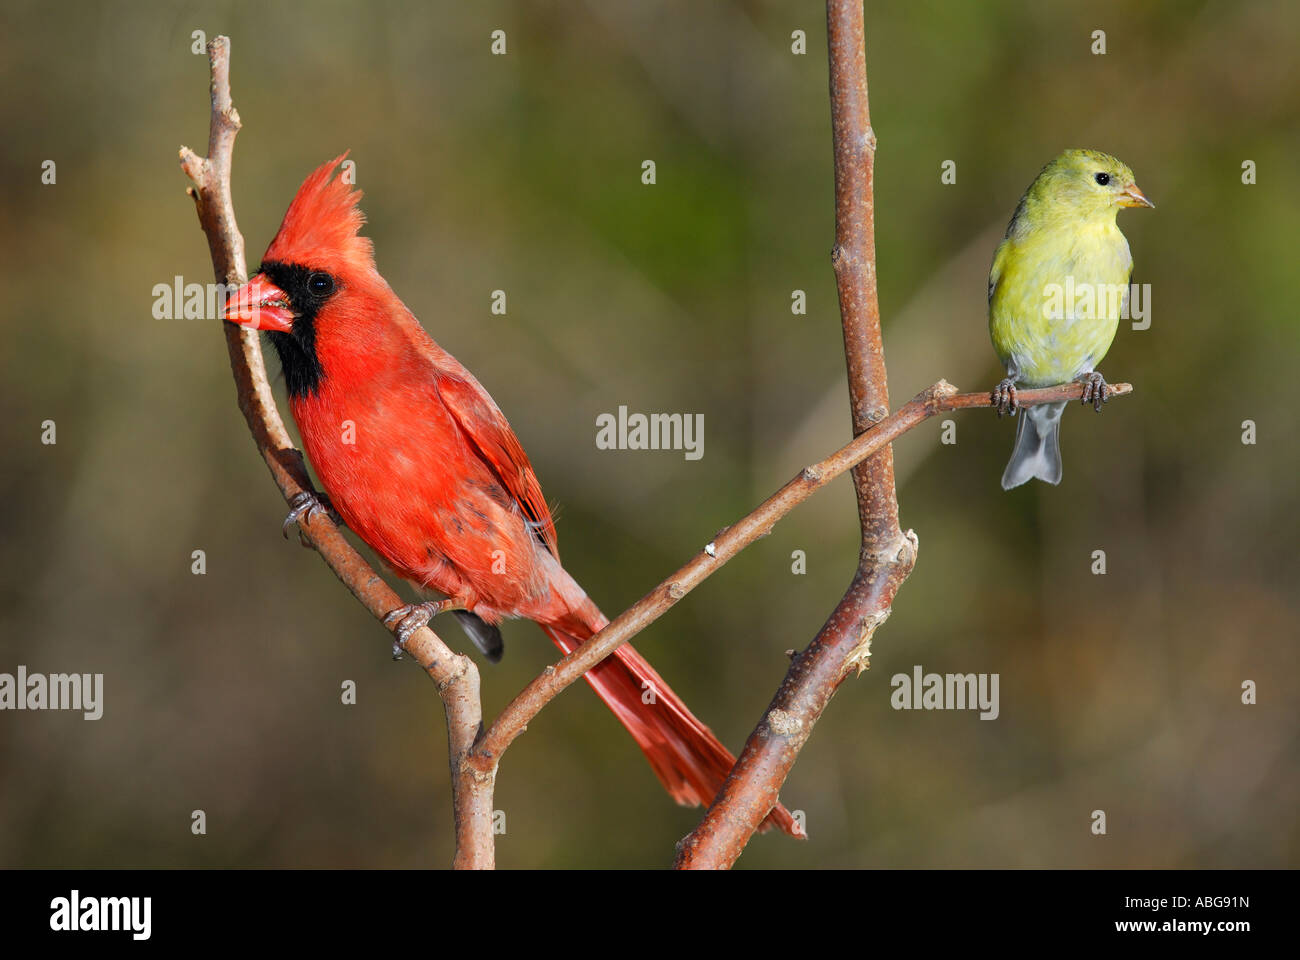 Male Northern Cardinal Cardinalis cardinalis and Female Goldfinch Spinus tristis on a branch - Stock Image